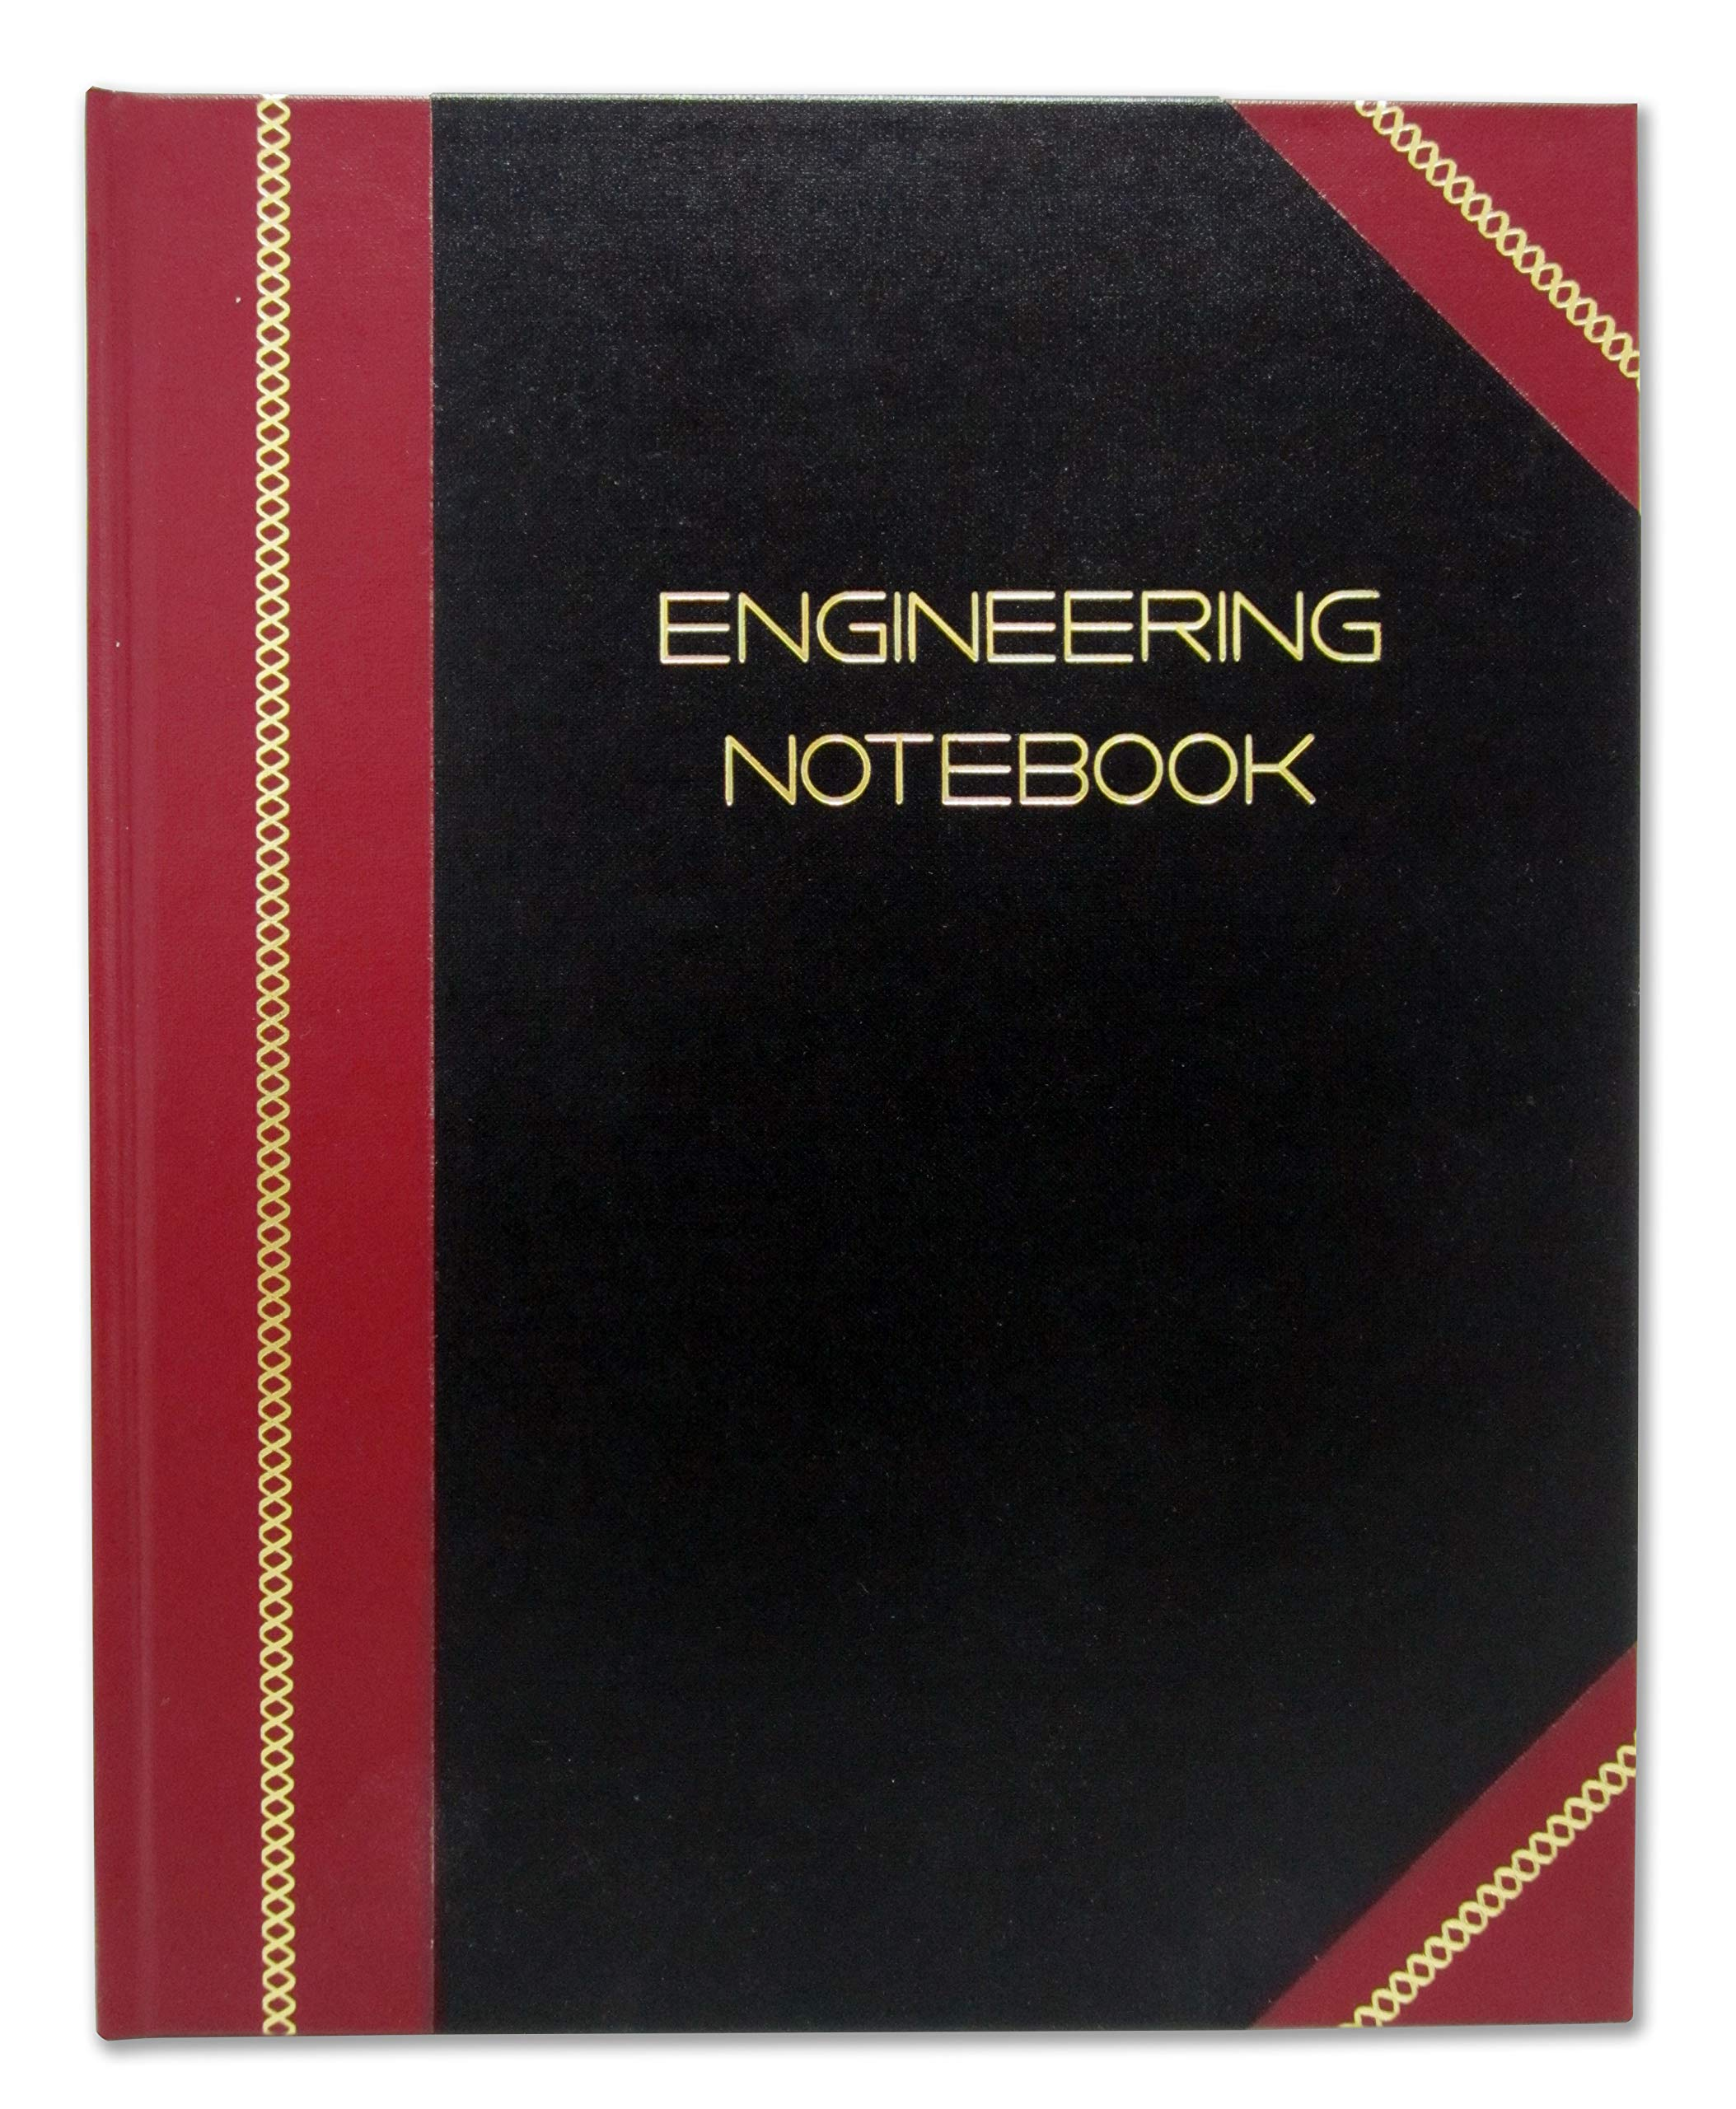 BookFactory Professional Engineering Notebook - 96 Pages (Quad Ruled - .25'' Engineering Grid Format), 8'' x 10'', Engineering Lab Notebook, Black and Burgundy Cover, Smyth Sewn Hardbound (EPRIL-096-SGS-